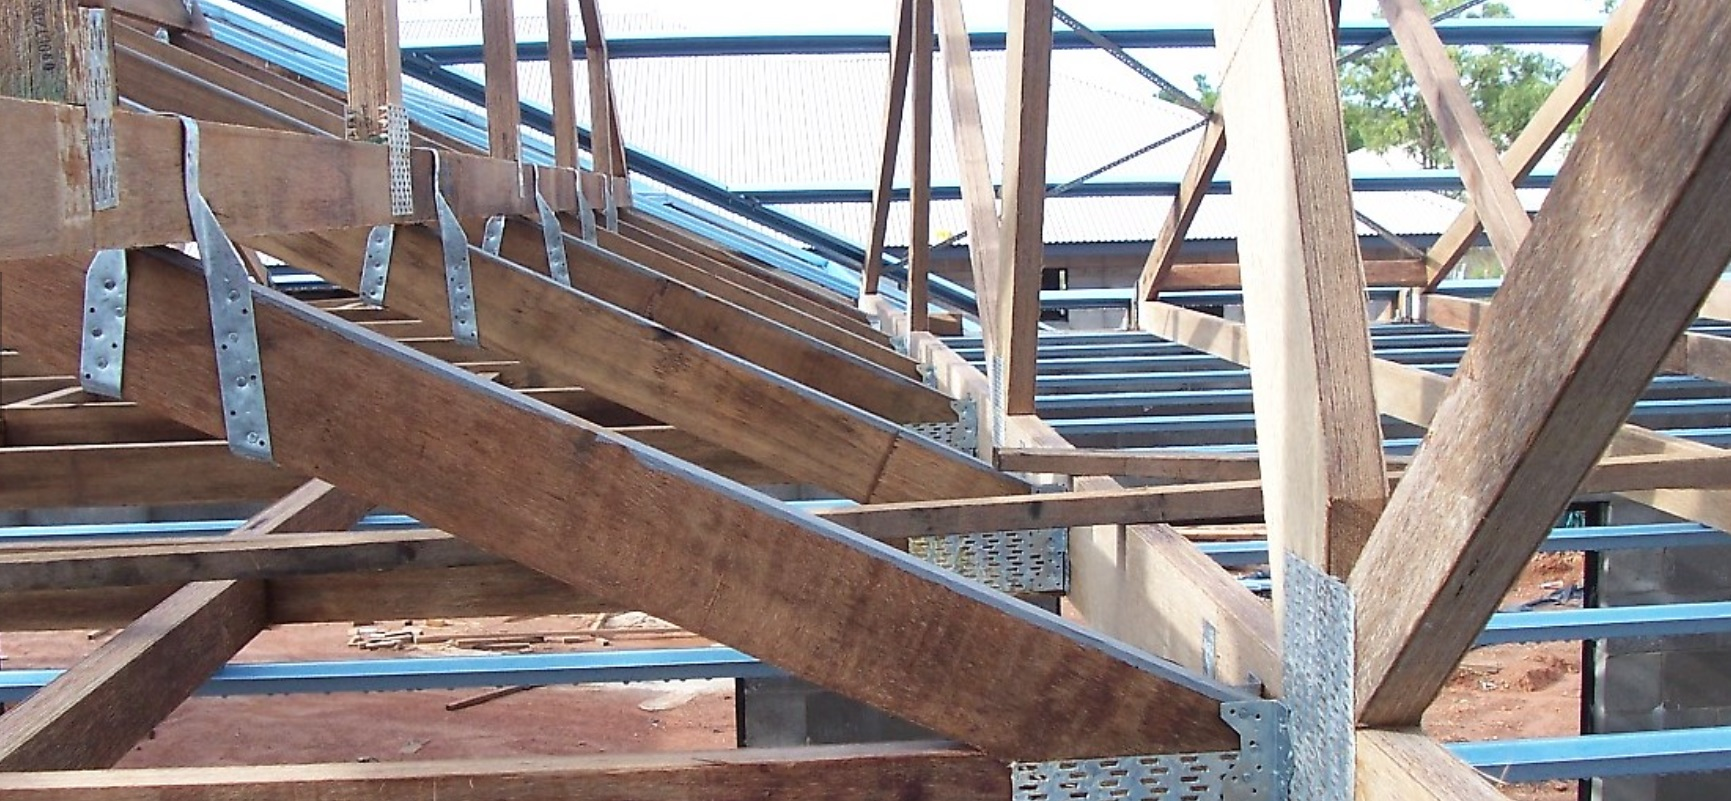 Building Supplies Business For Sale Southern Queensland in Queensland, Australia